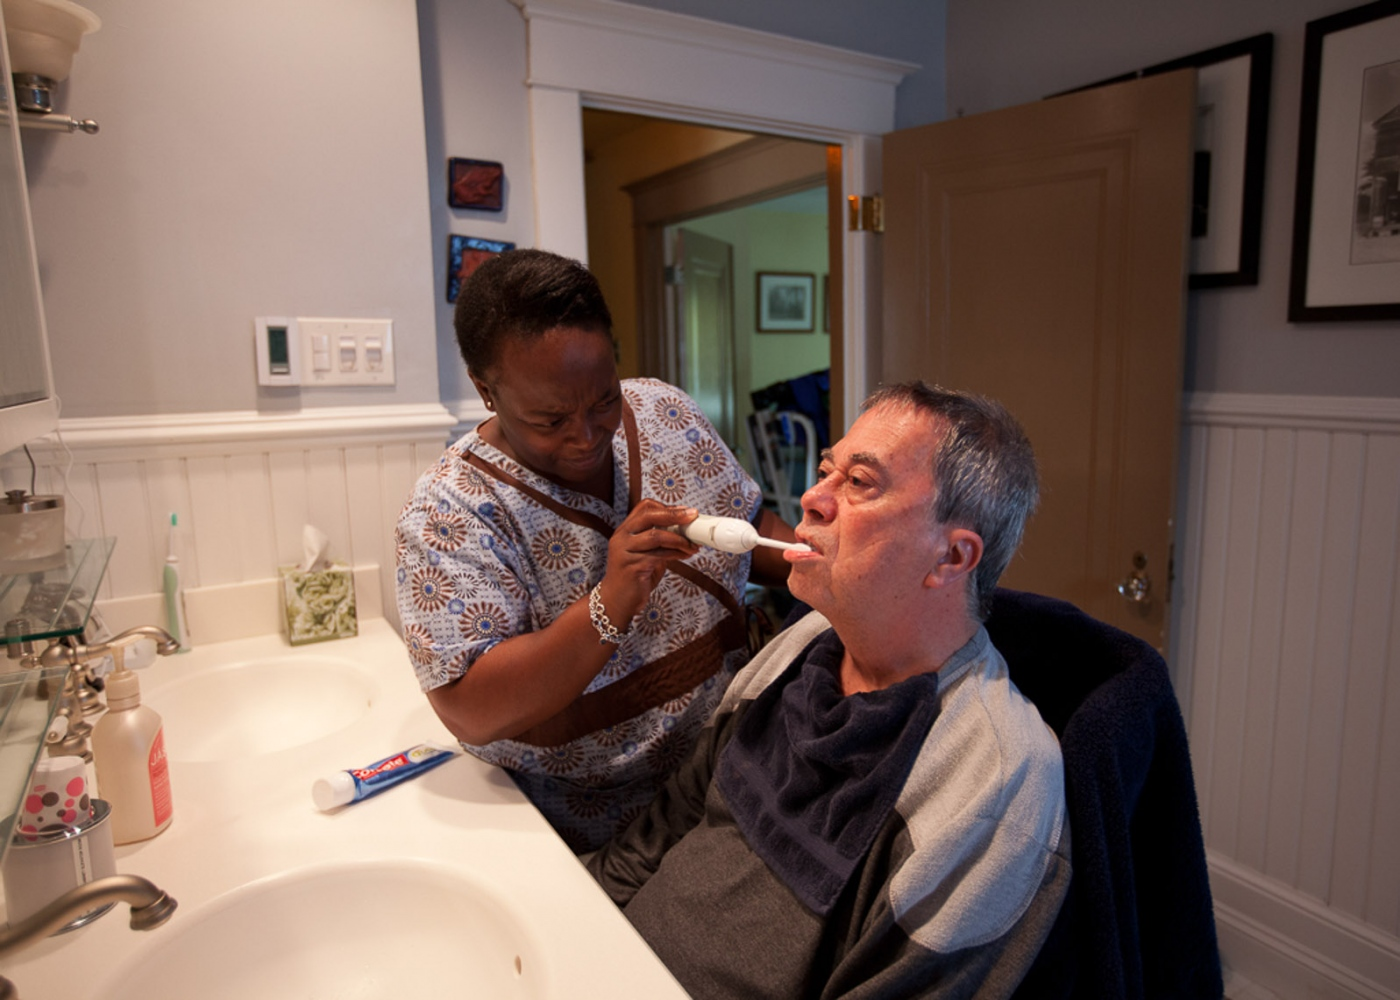 A home health aide comes 4 hours per day to help get Steve ready, a routine that includes bathing him, brushing his teeth, getting him dressed and physical therapy. For Money Magazine